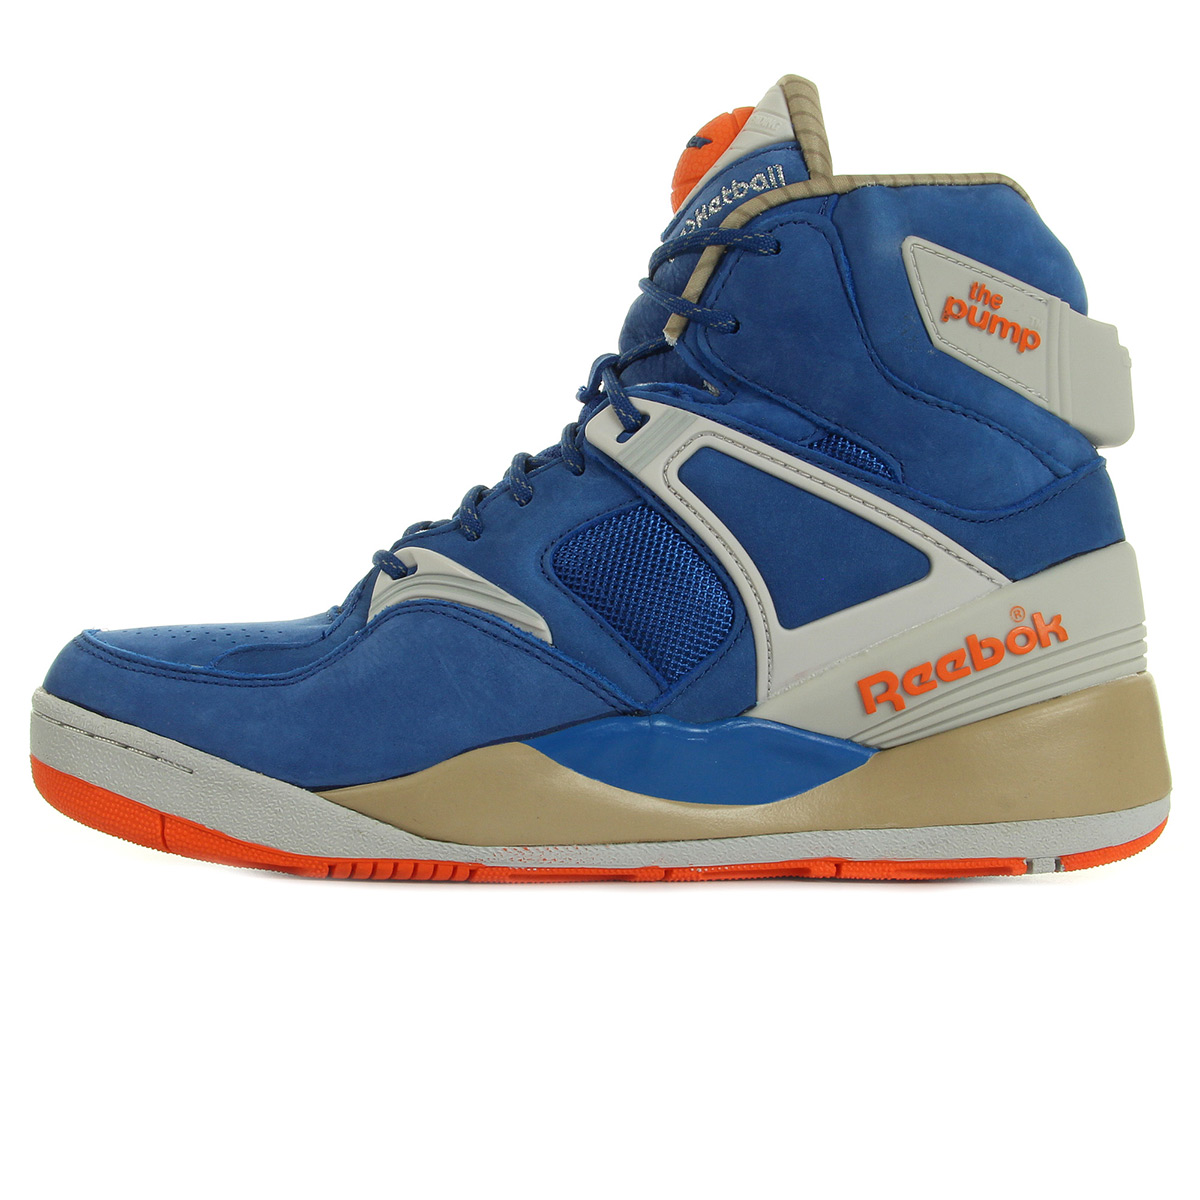 chaussures baskets reebok homme the pump certified taille bleu bleue cuir lacets ebay. Black Bedroom Furniture Sets. Home Design Ideas